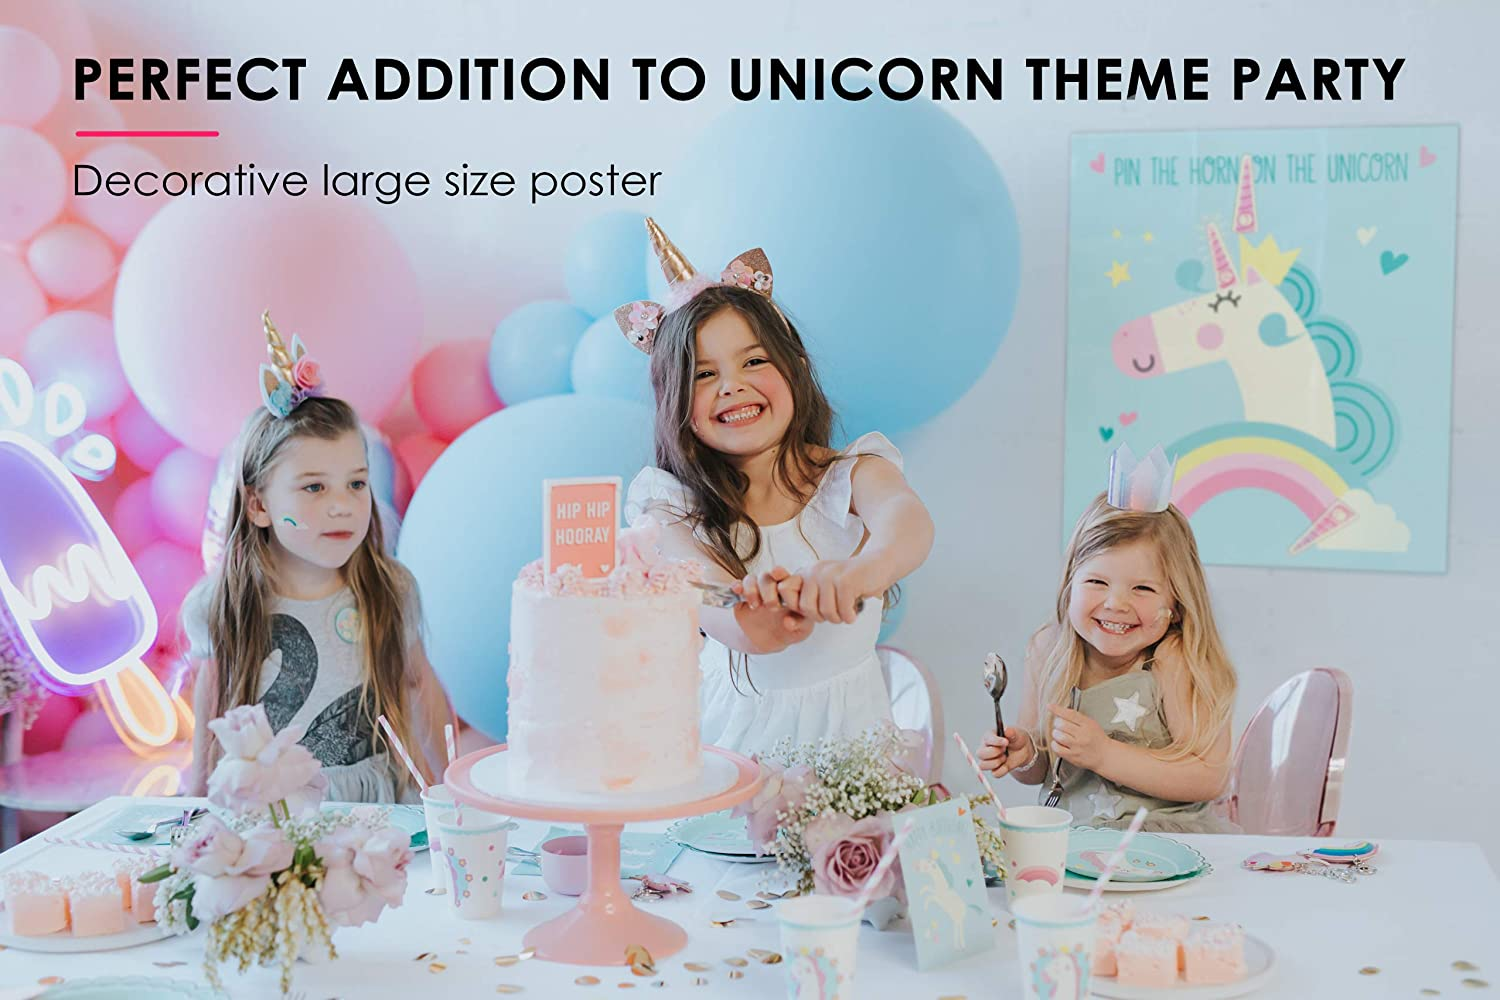 Hugo /& Emmy Pin The Horn on The Unicorn Party Game for Birthday Parties and Sleepovers Ideal for Kids and Toddlers